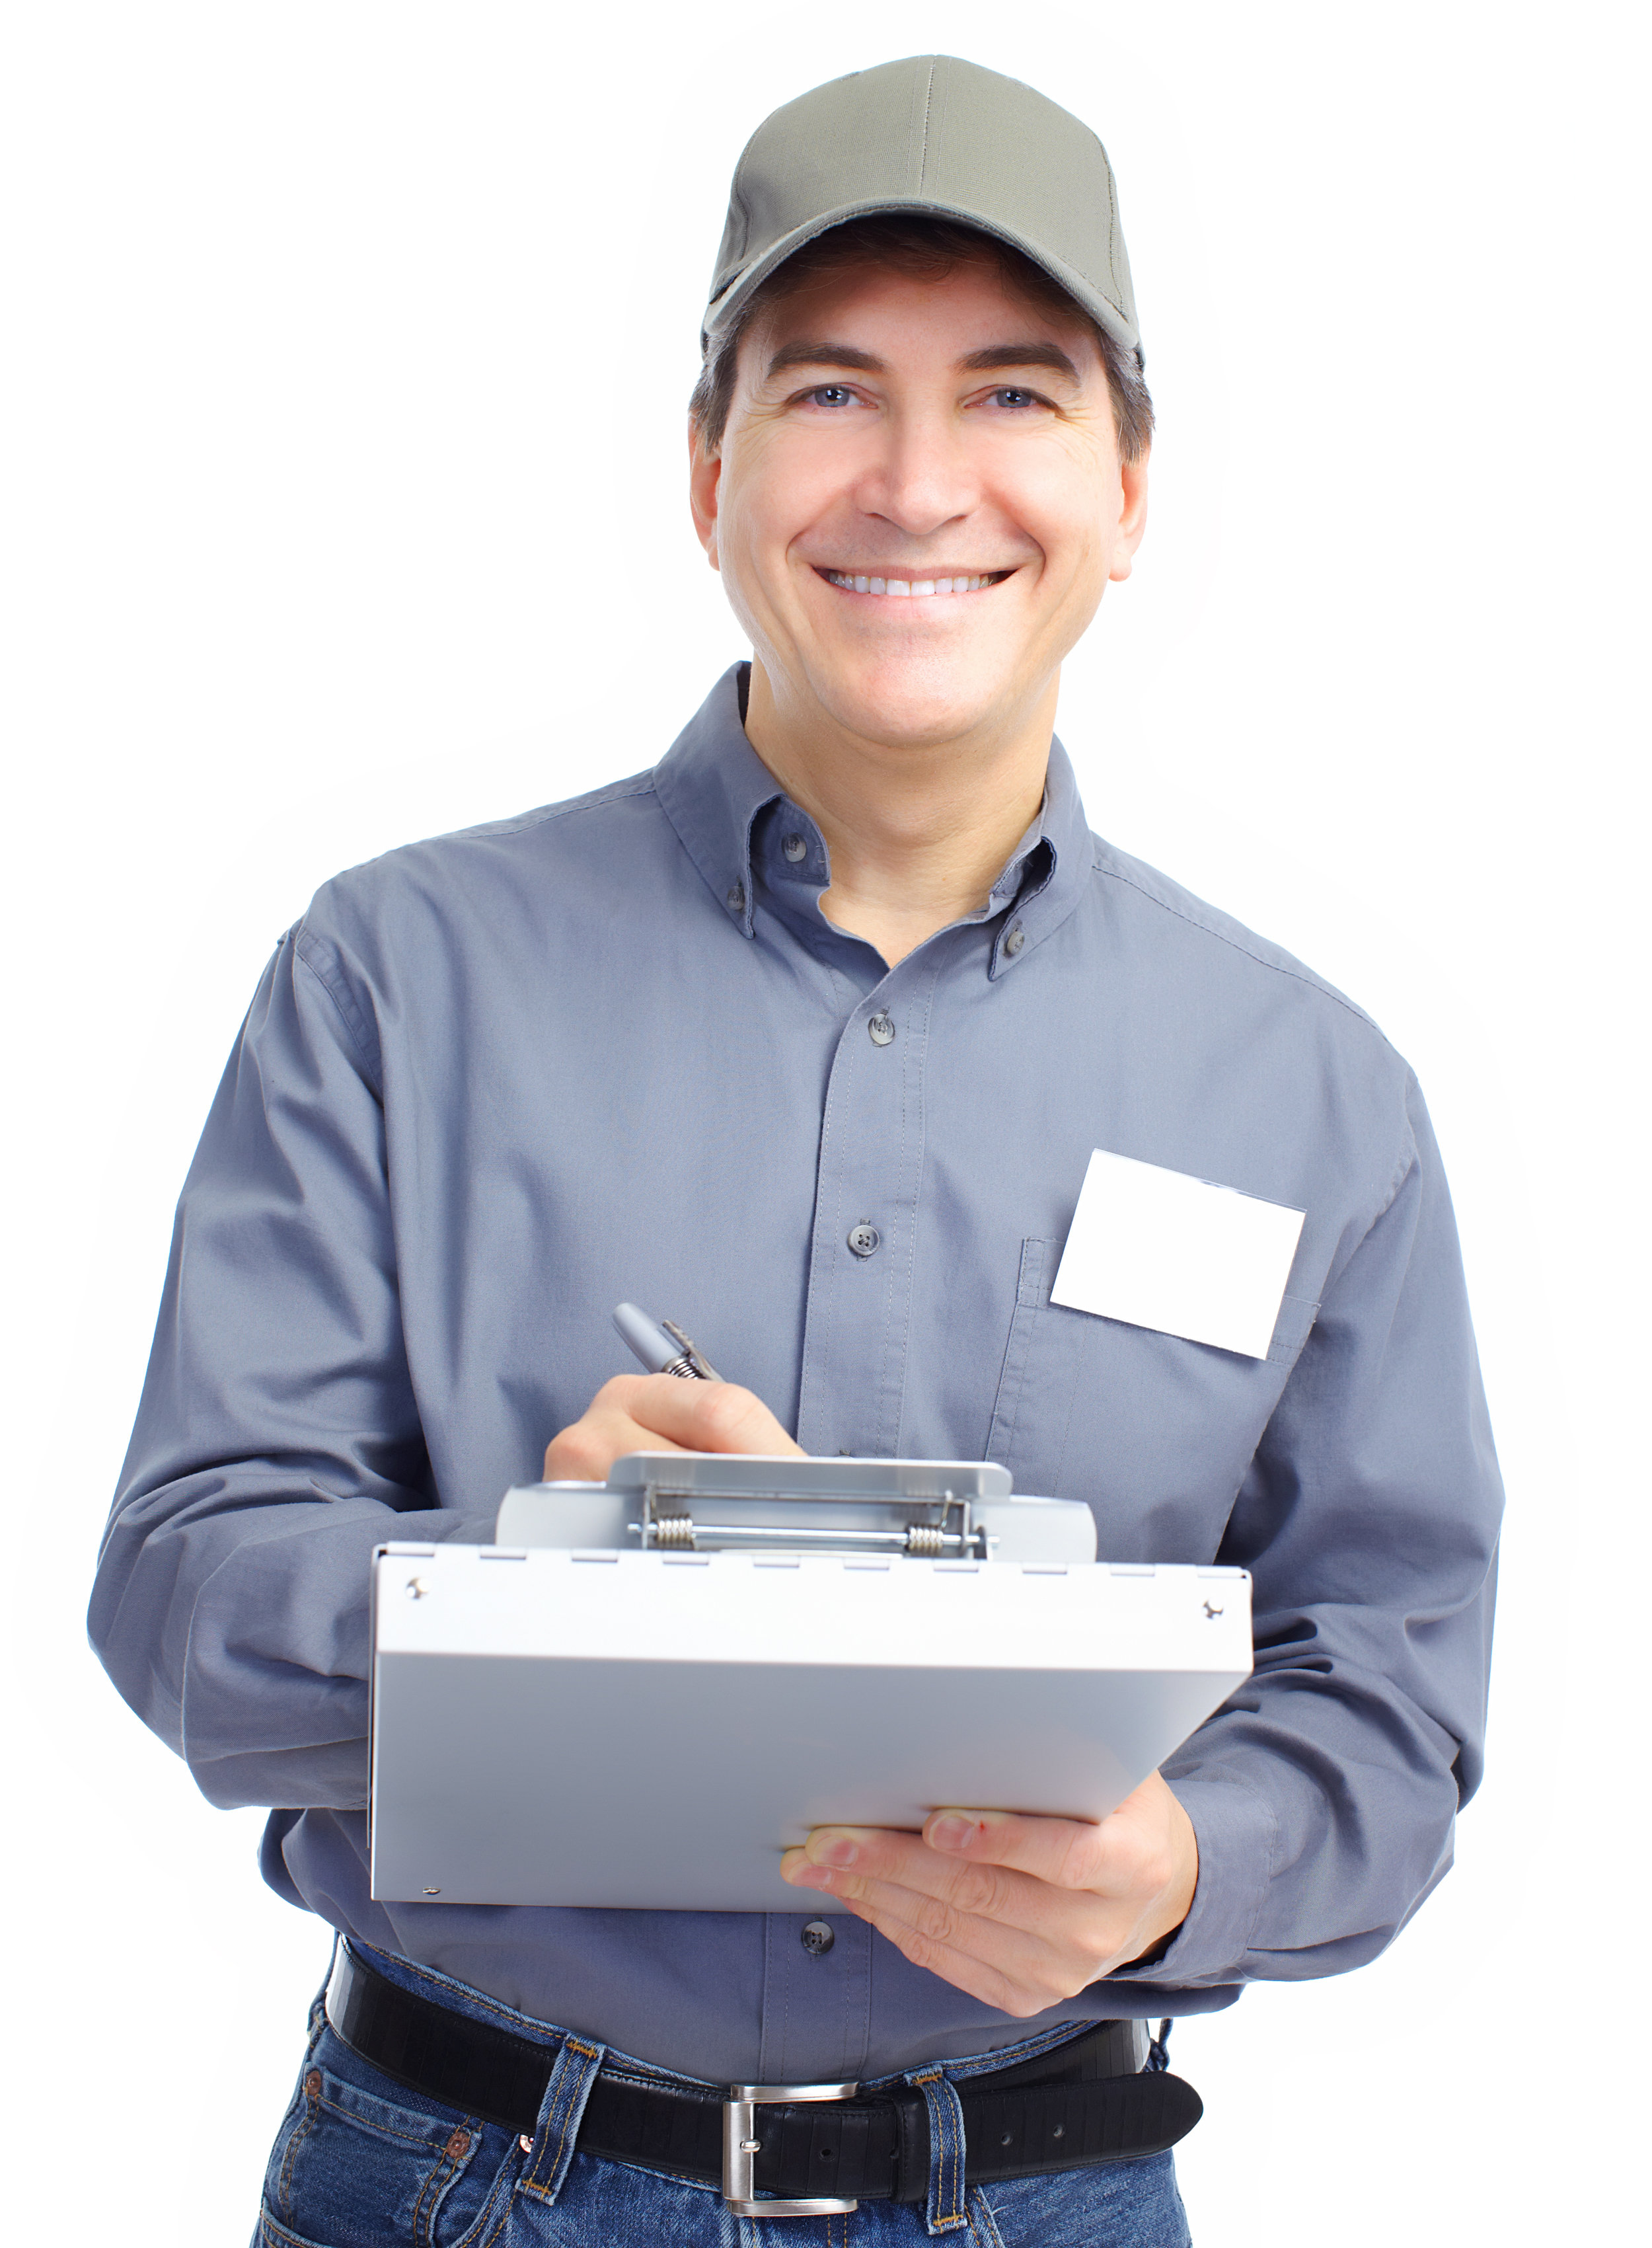 Factory-trained, courteous HVAC technicians at your door when you need them. See for yourself why our customer service is unmatched from Salisbury to Weymouth.